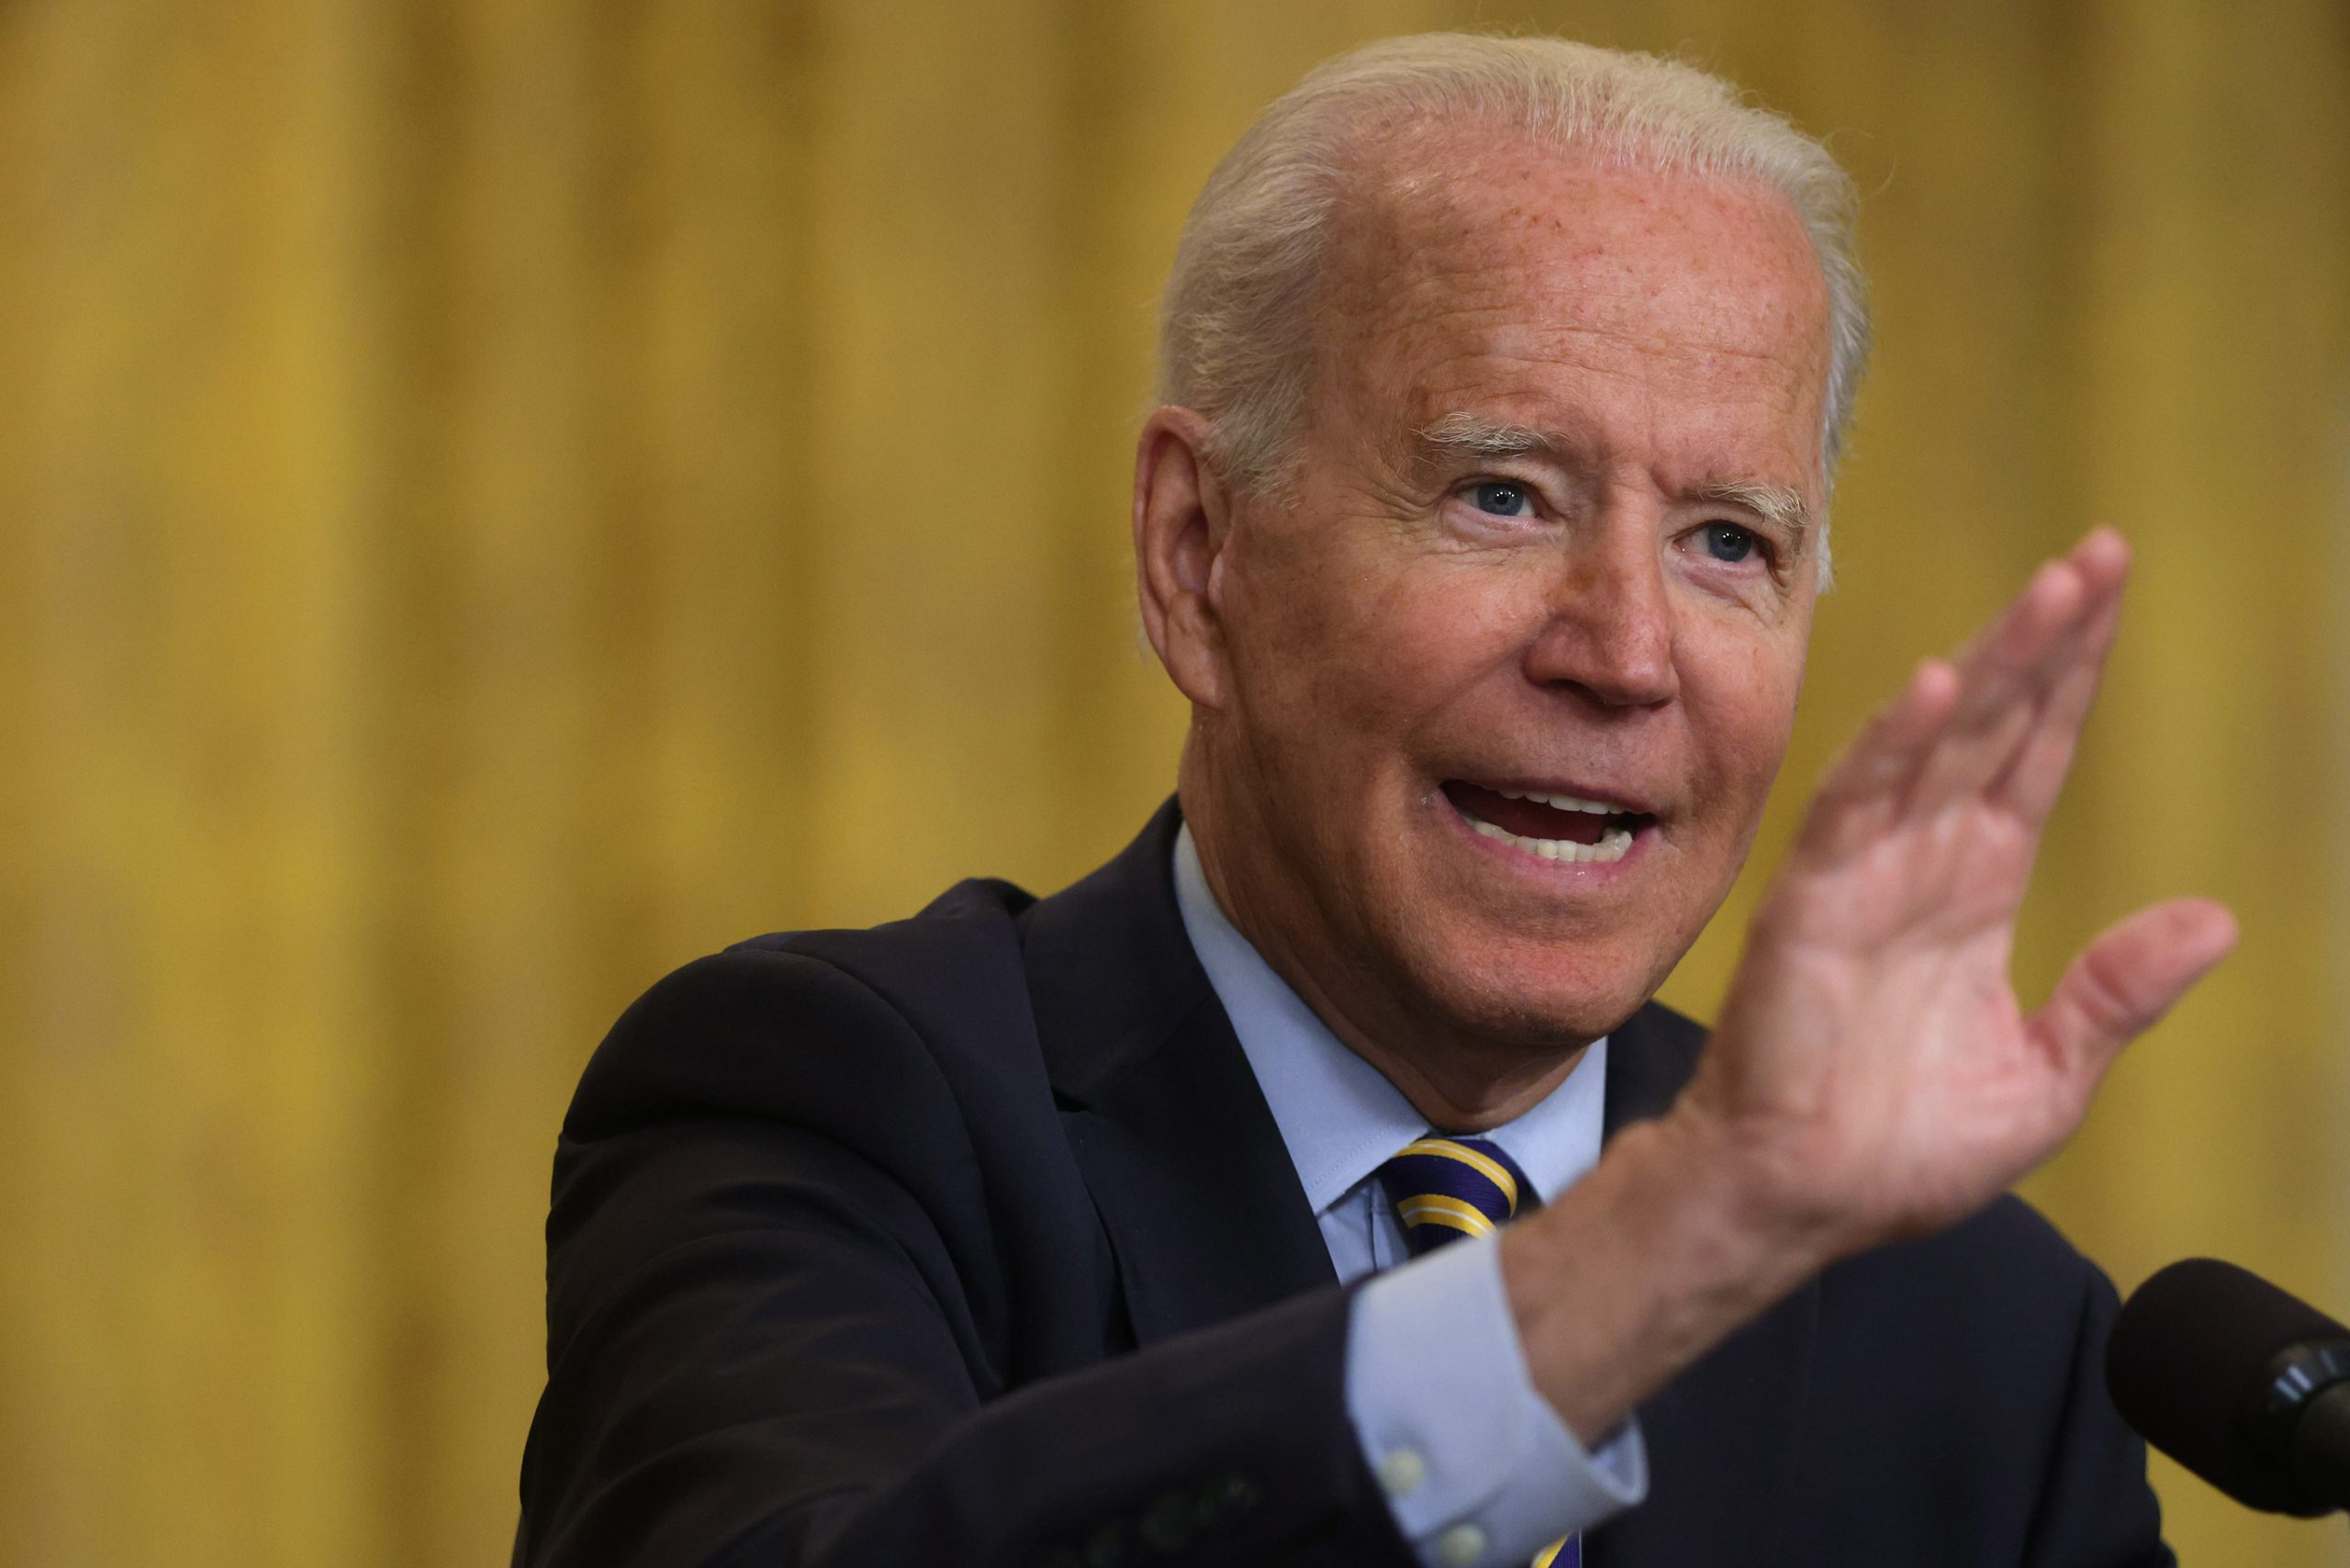 Here's how Biden's decision making on Afghanistan unfolded